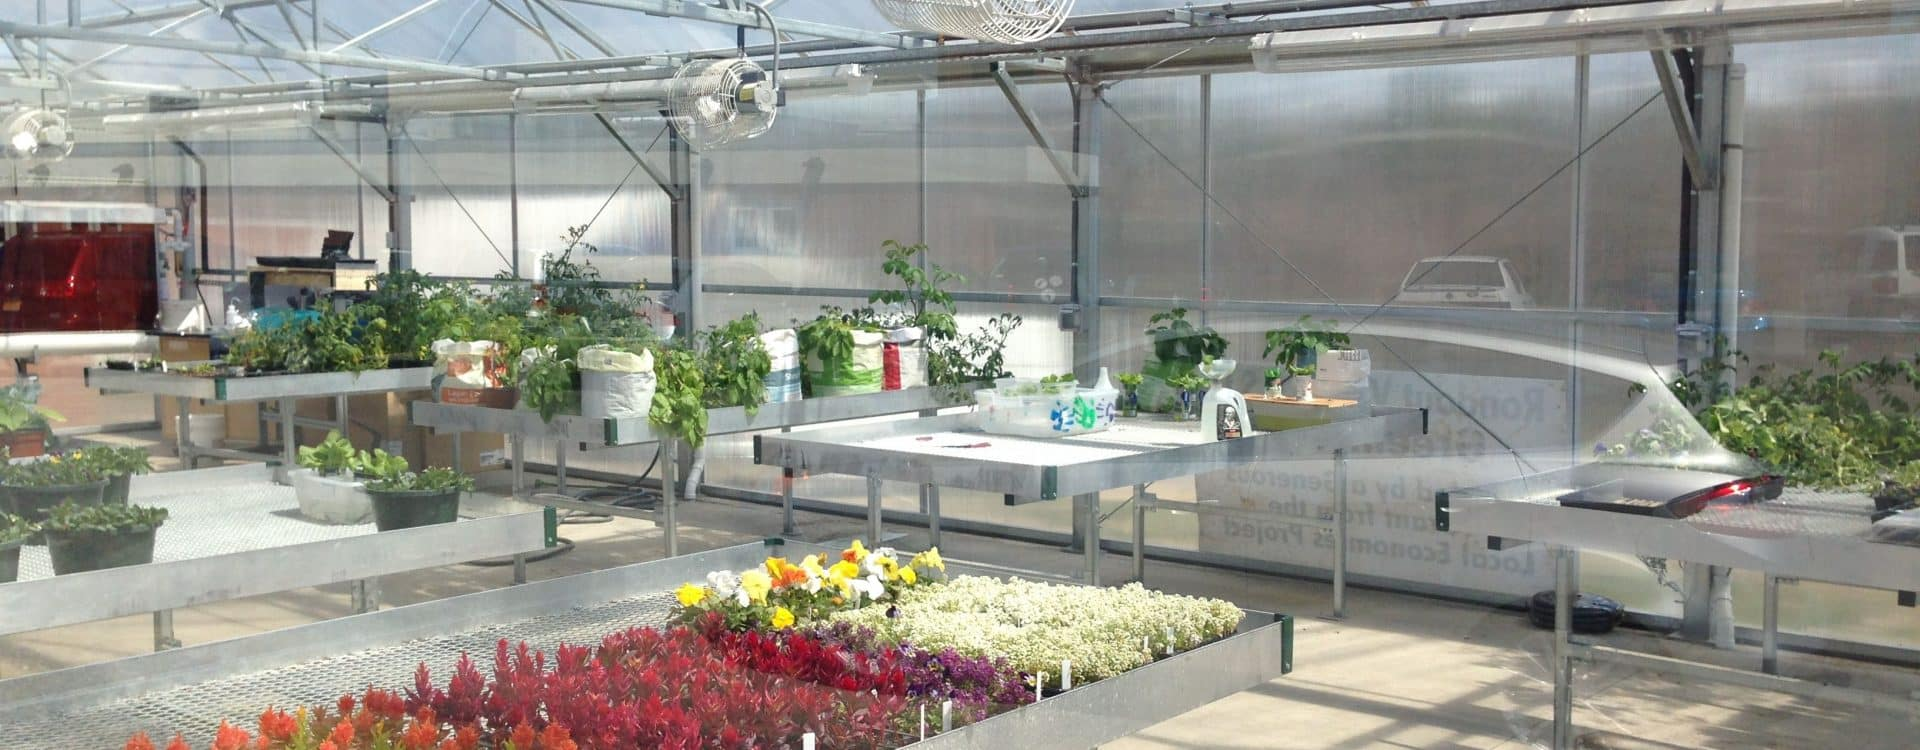 Image of green house.